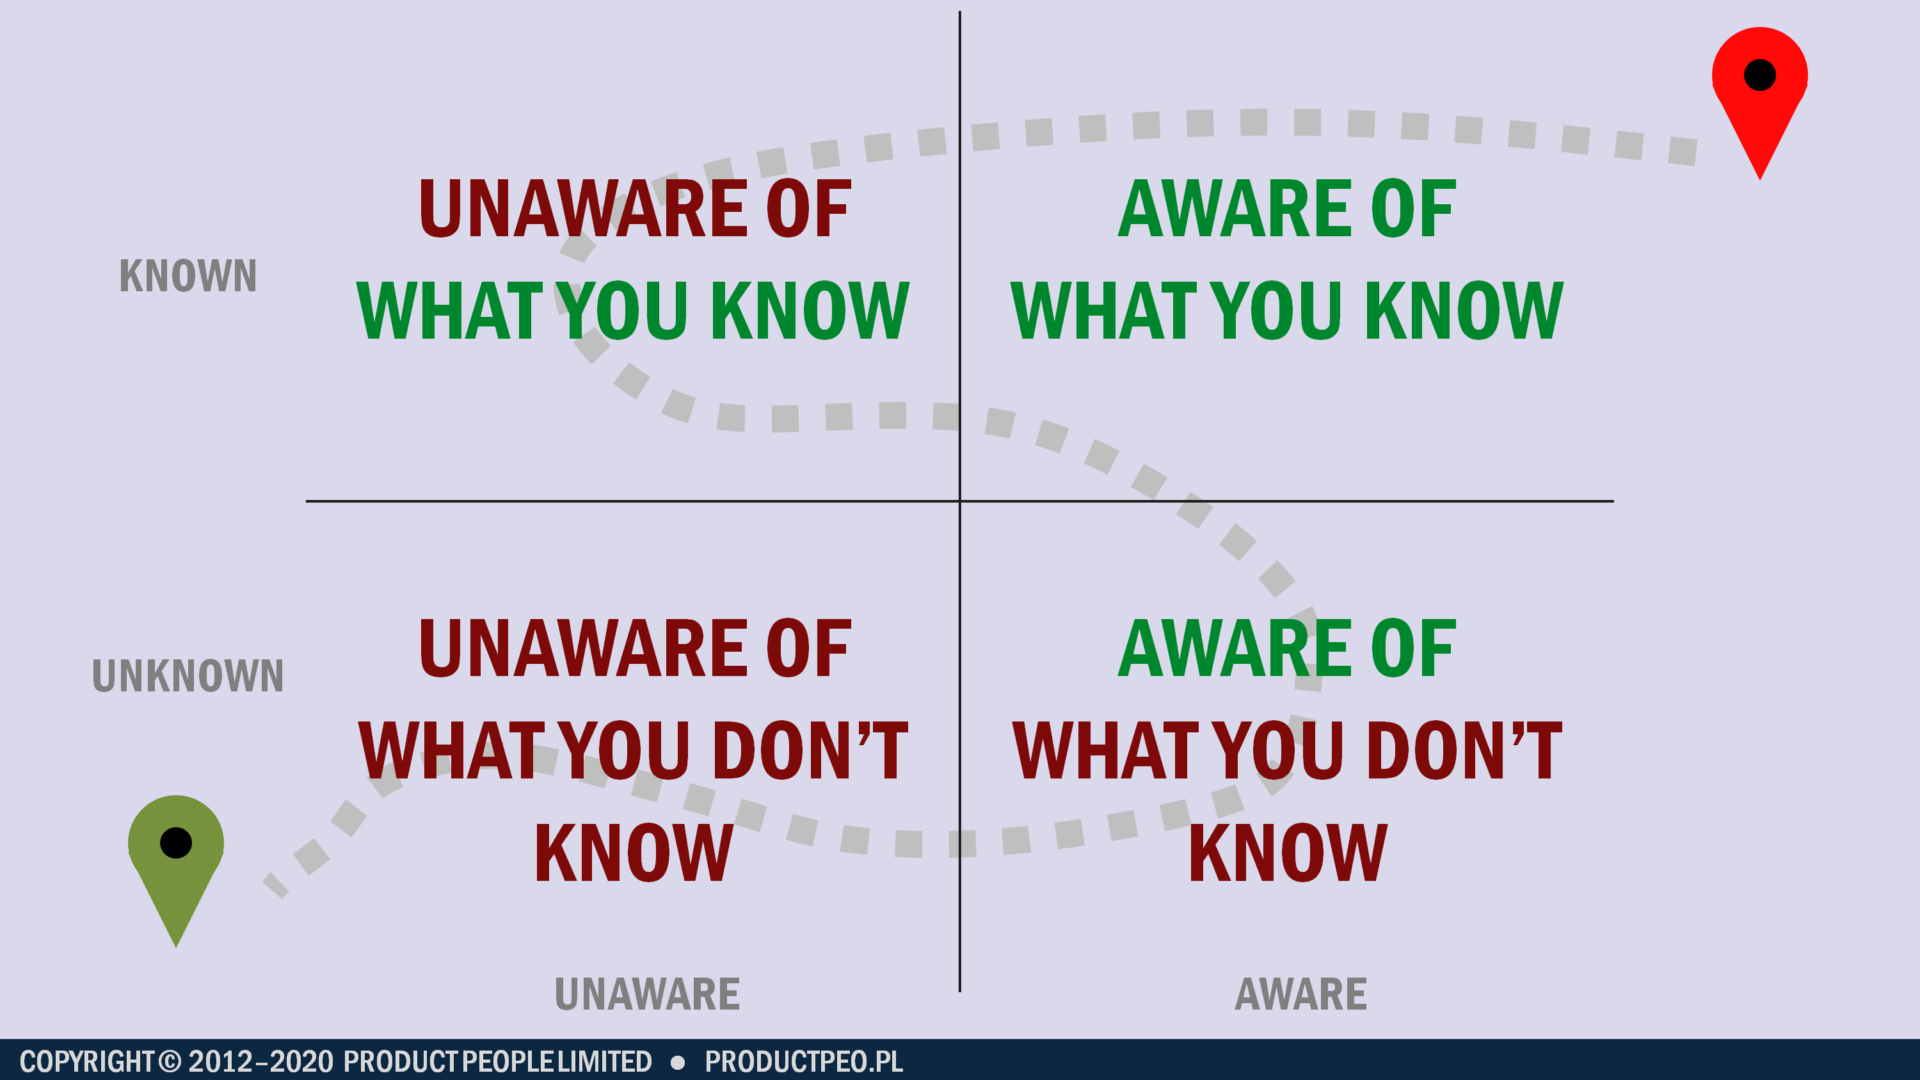 A two-by-two grid mapping known / unknown against unaware / aware (Credit: Jock Busuttil / Product People Limited)